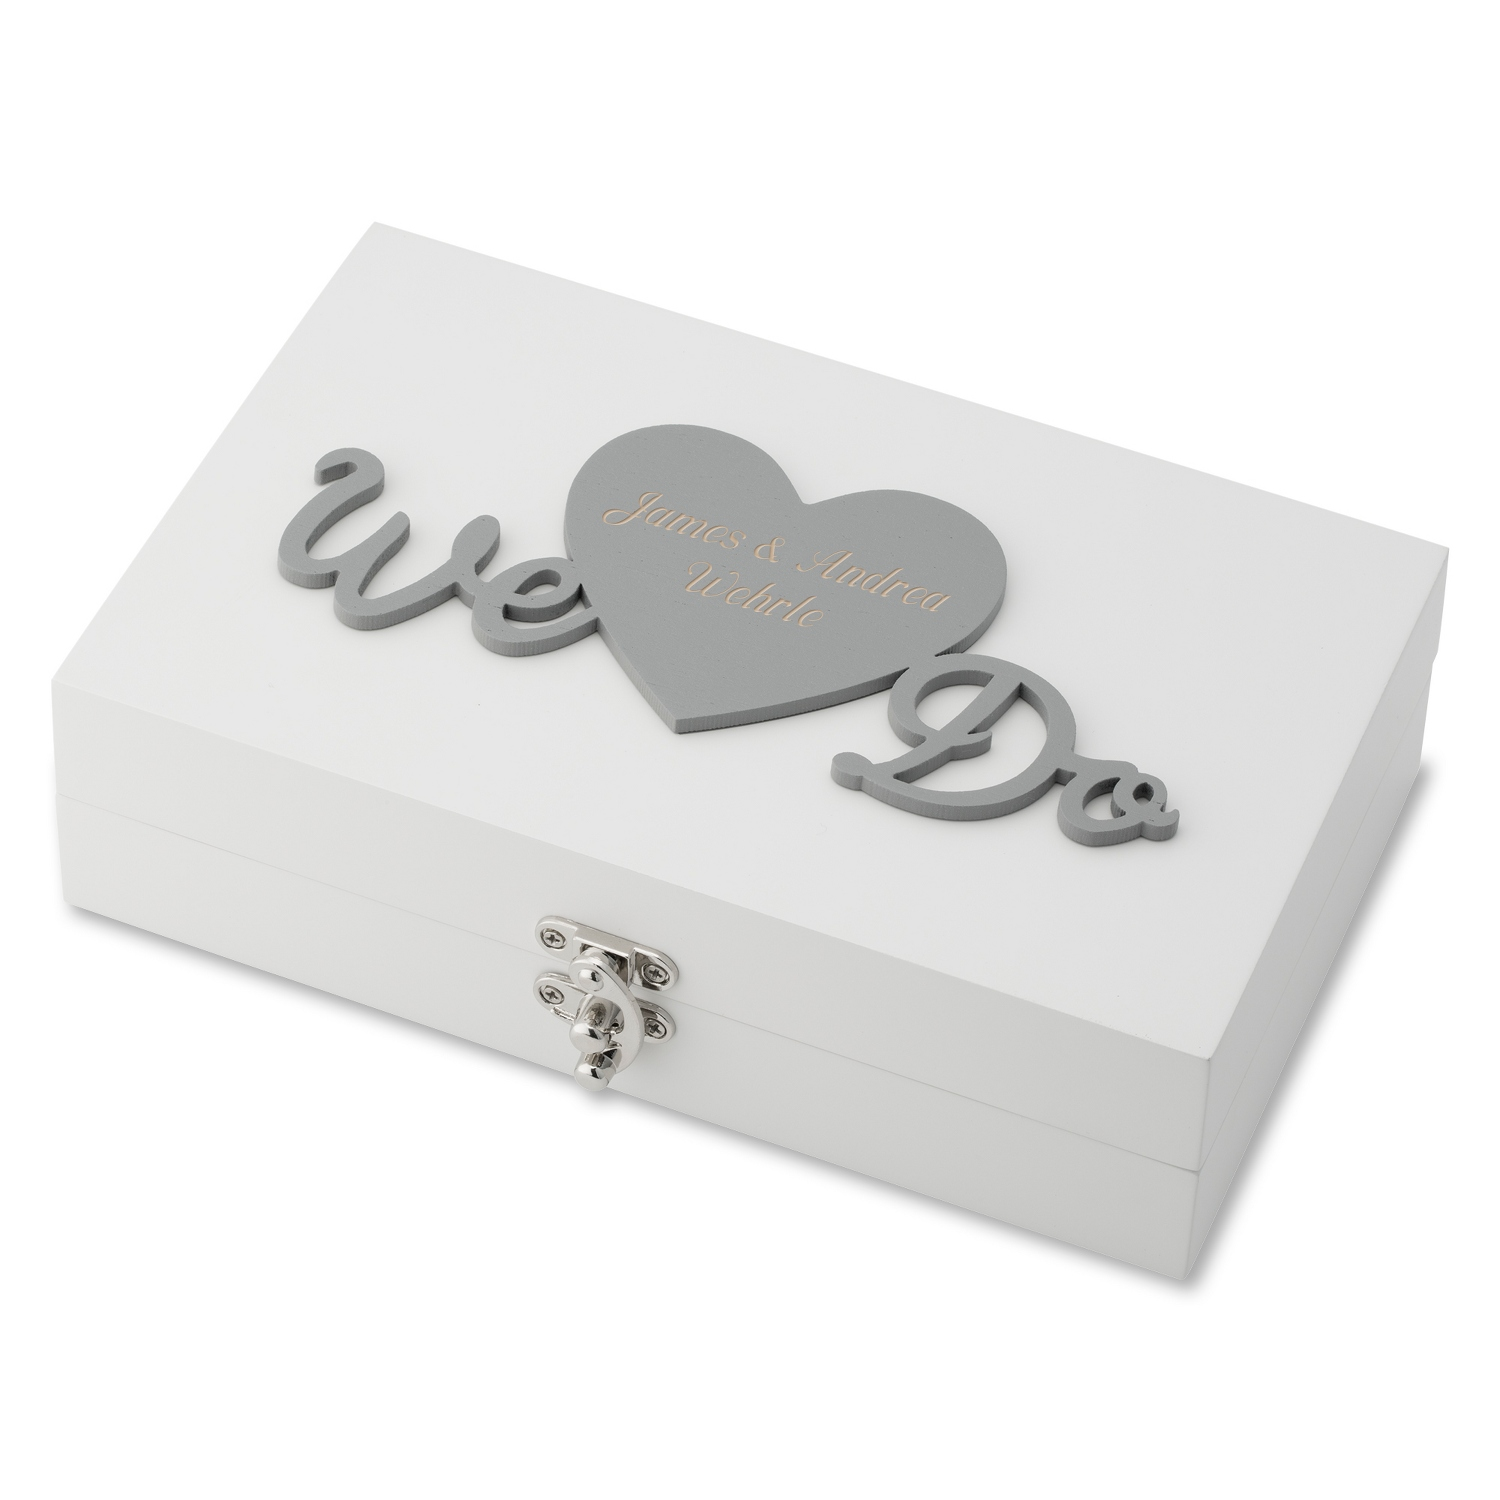 Guest book favors accessories at things remembered we do wedding ring box 1betcityfo Gallery